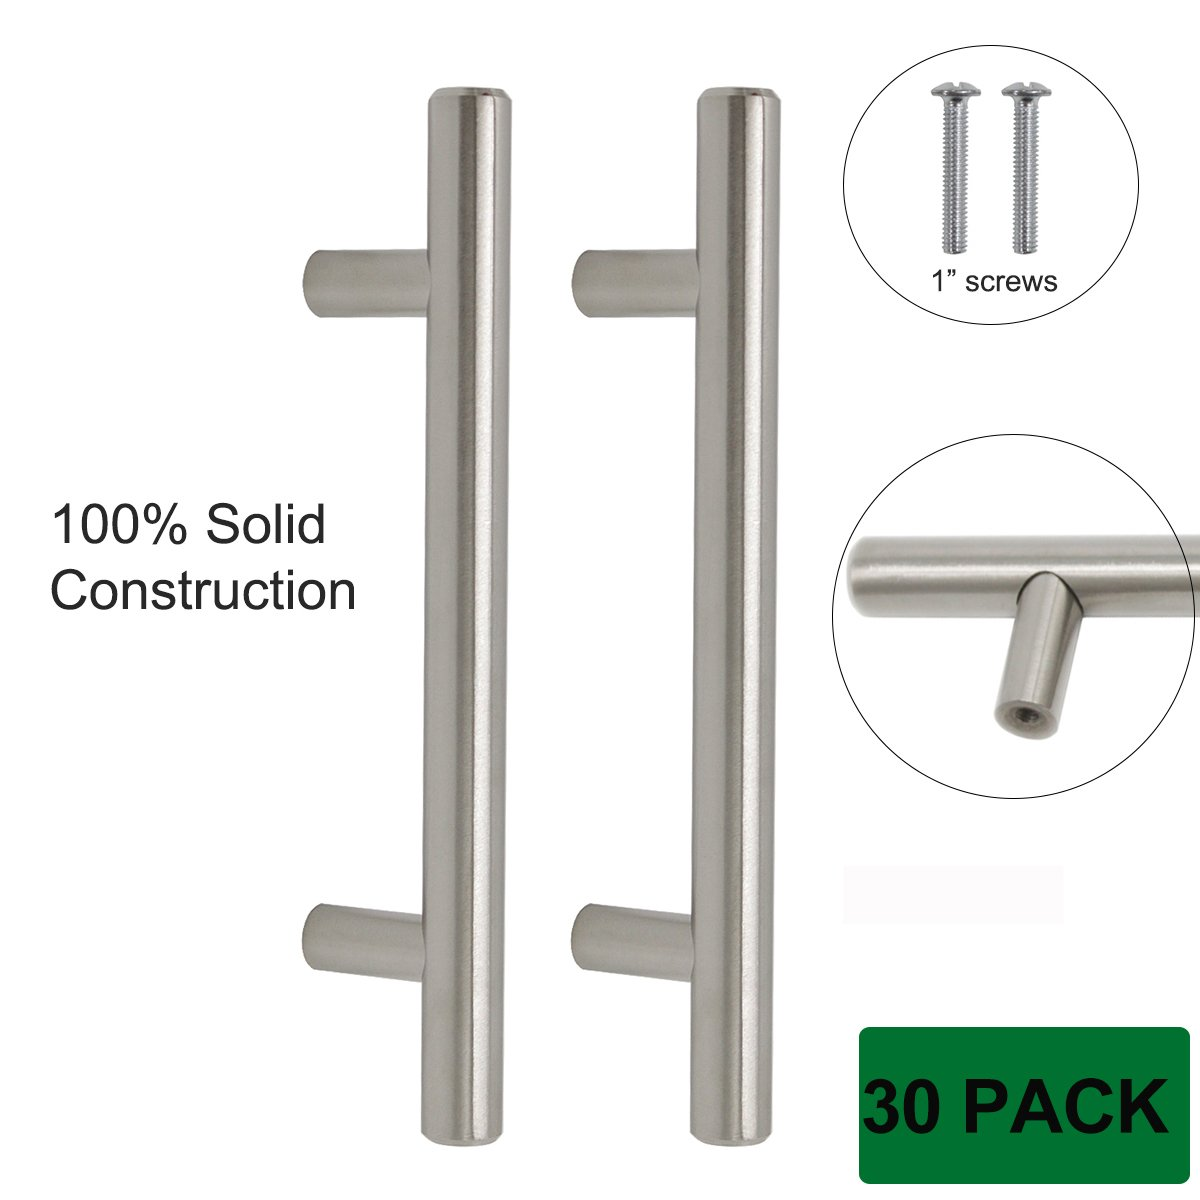 Probrico Cabinet Hardware Pulls and Handles SOLID Stainless Steel Kitchen Knobs Brushed Nickel 30 Pack, 6 Inch Overall Length